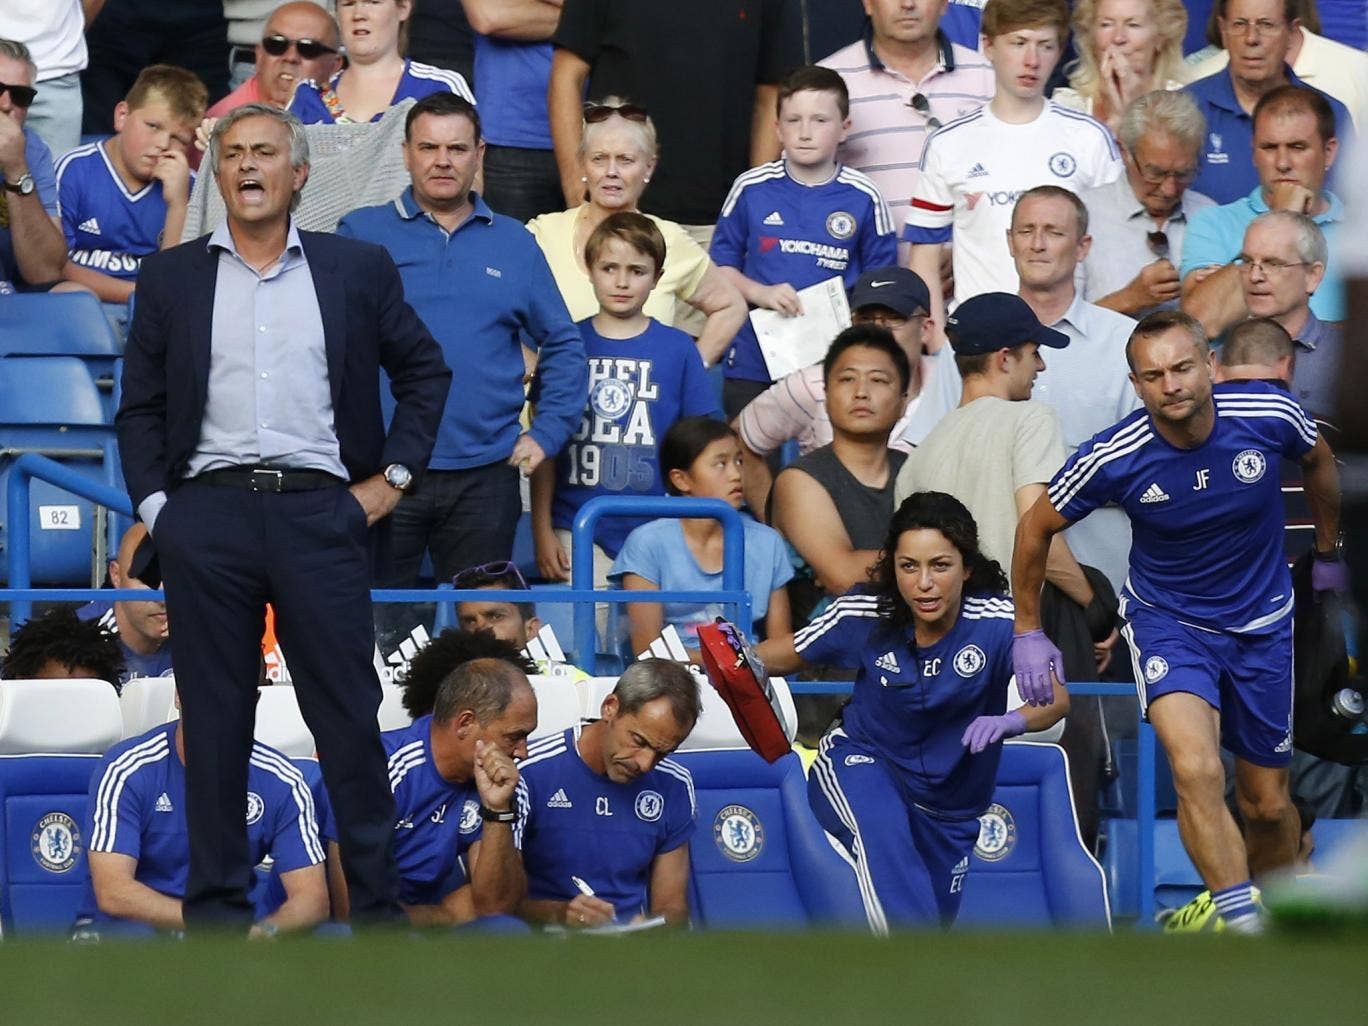 The former team doctor resigned from her position at Stamford Bridge last week